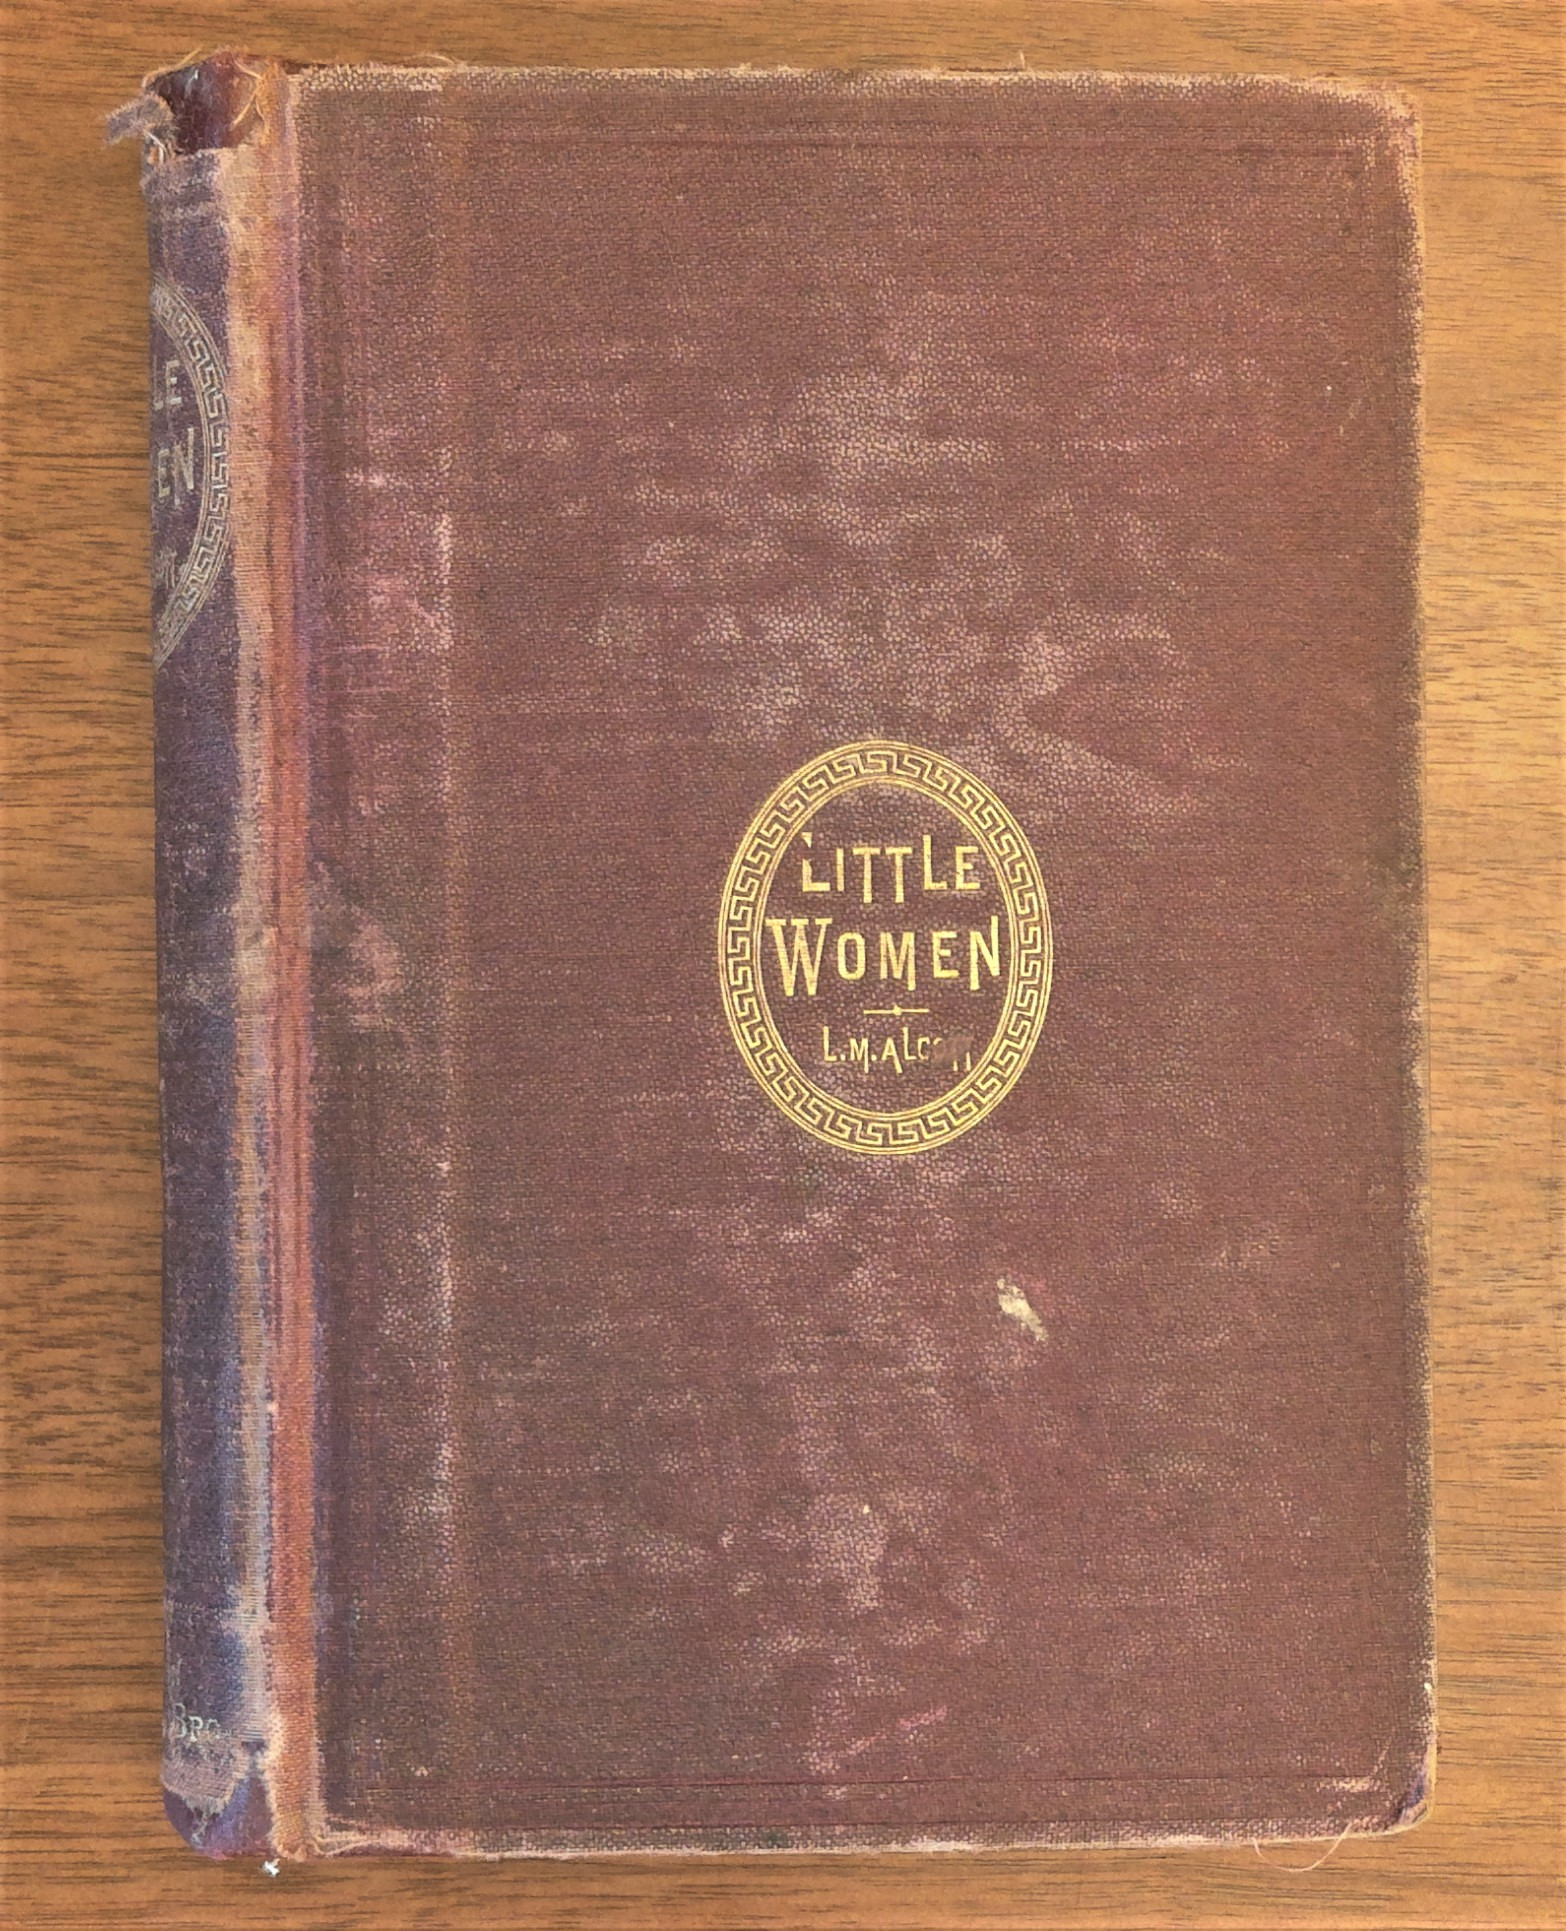 A first edition of Little Women shows just how closely the film hewed to the real production of the book.